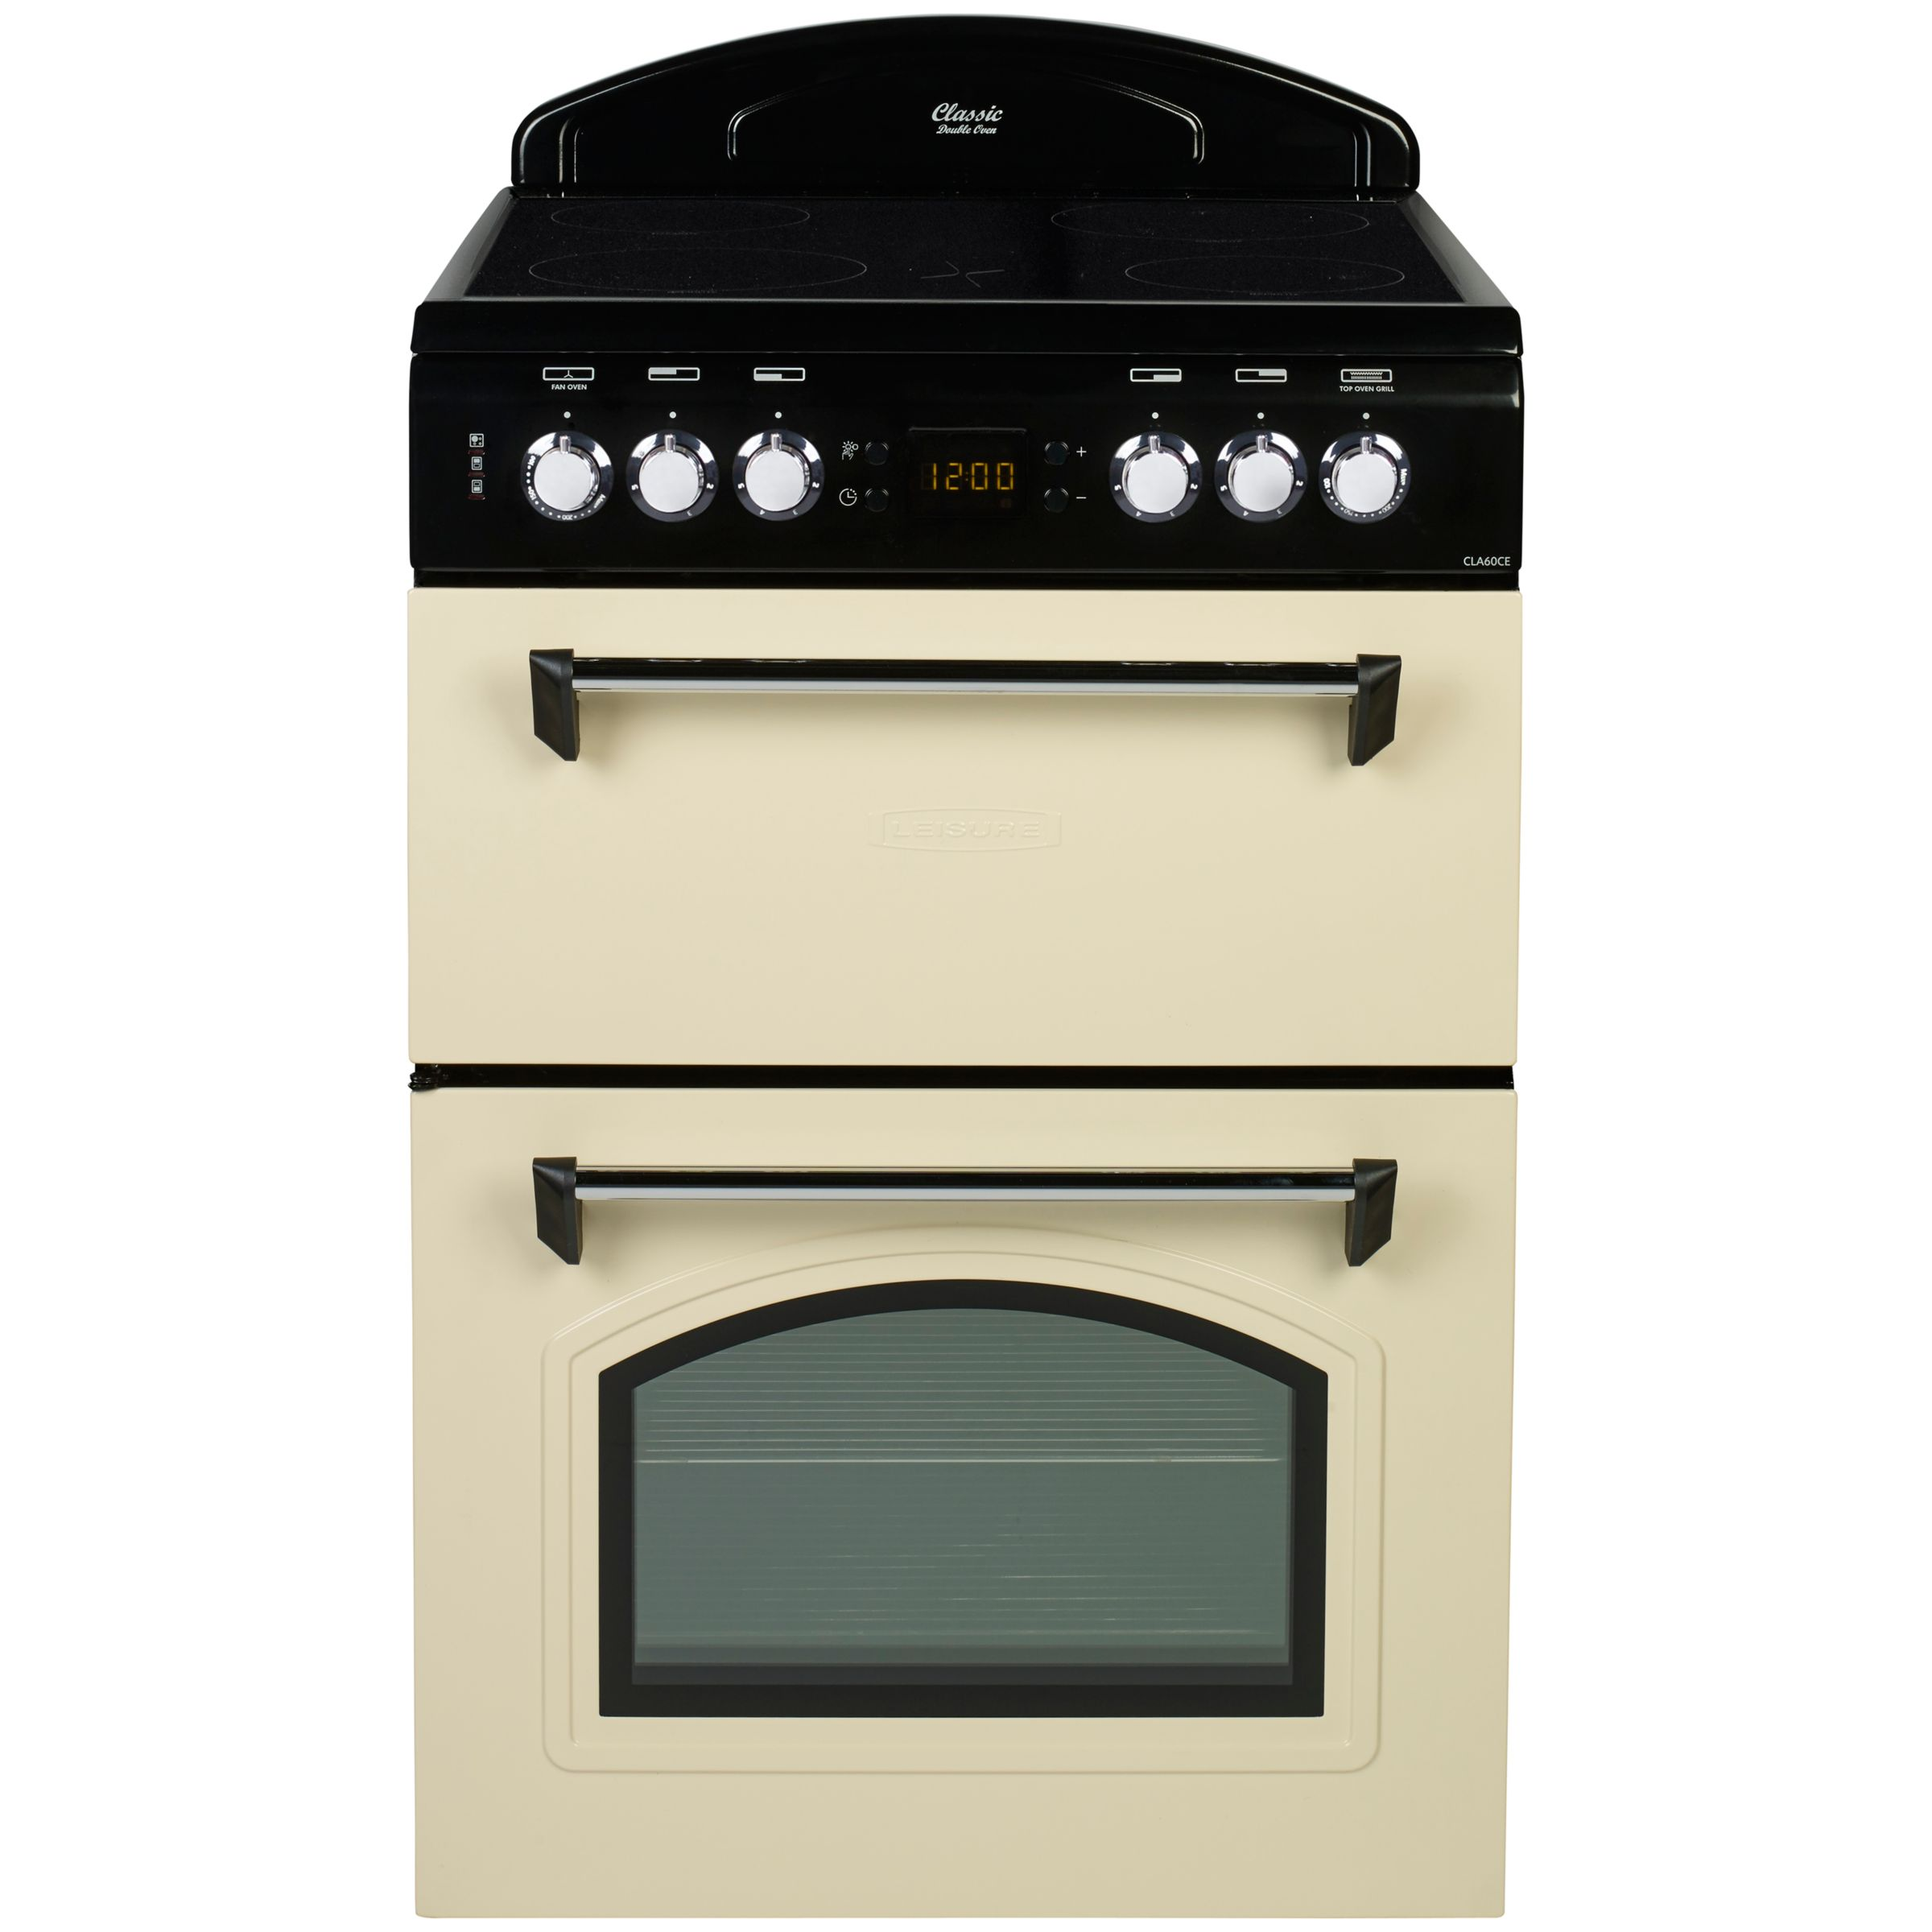 Leisure Leisure CLA60CE Classic Electric Double Cooker